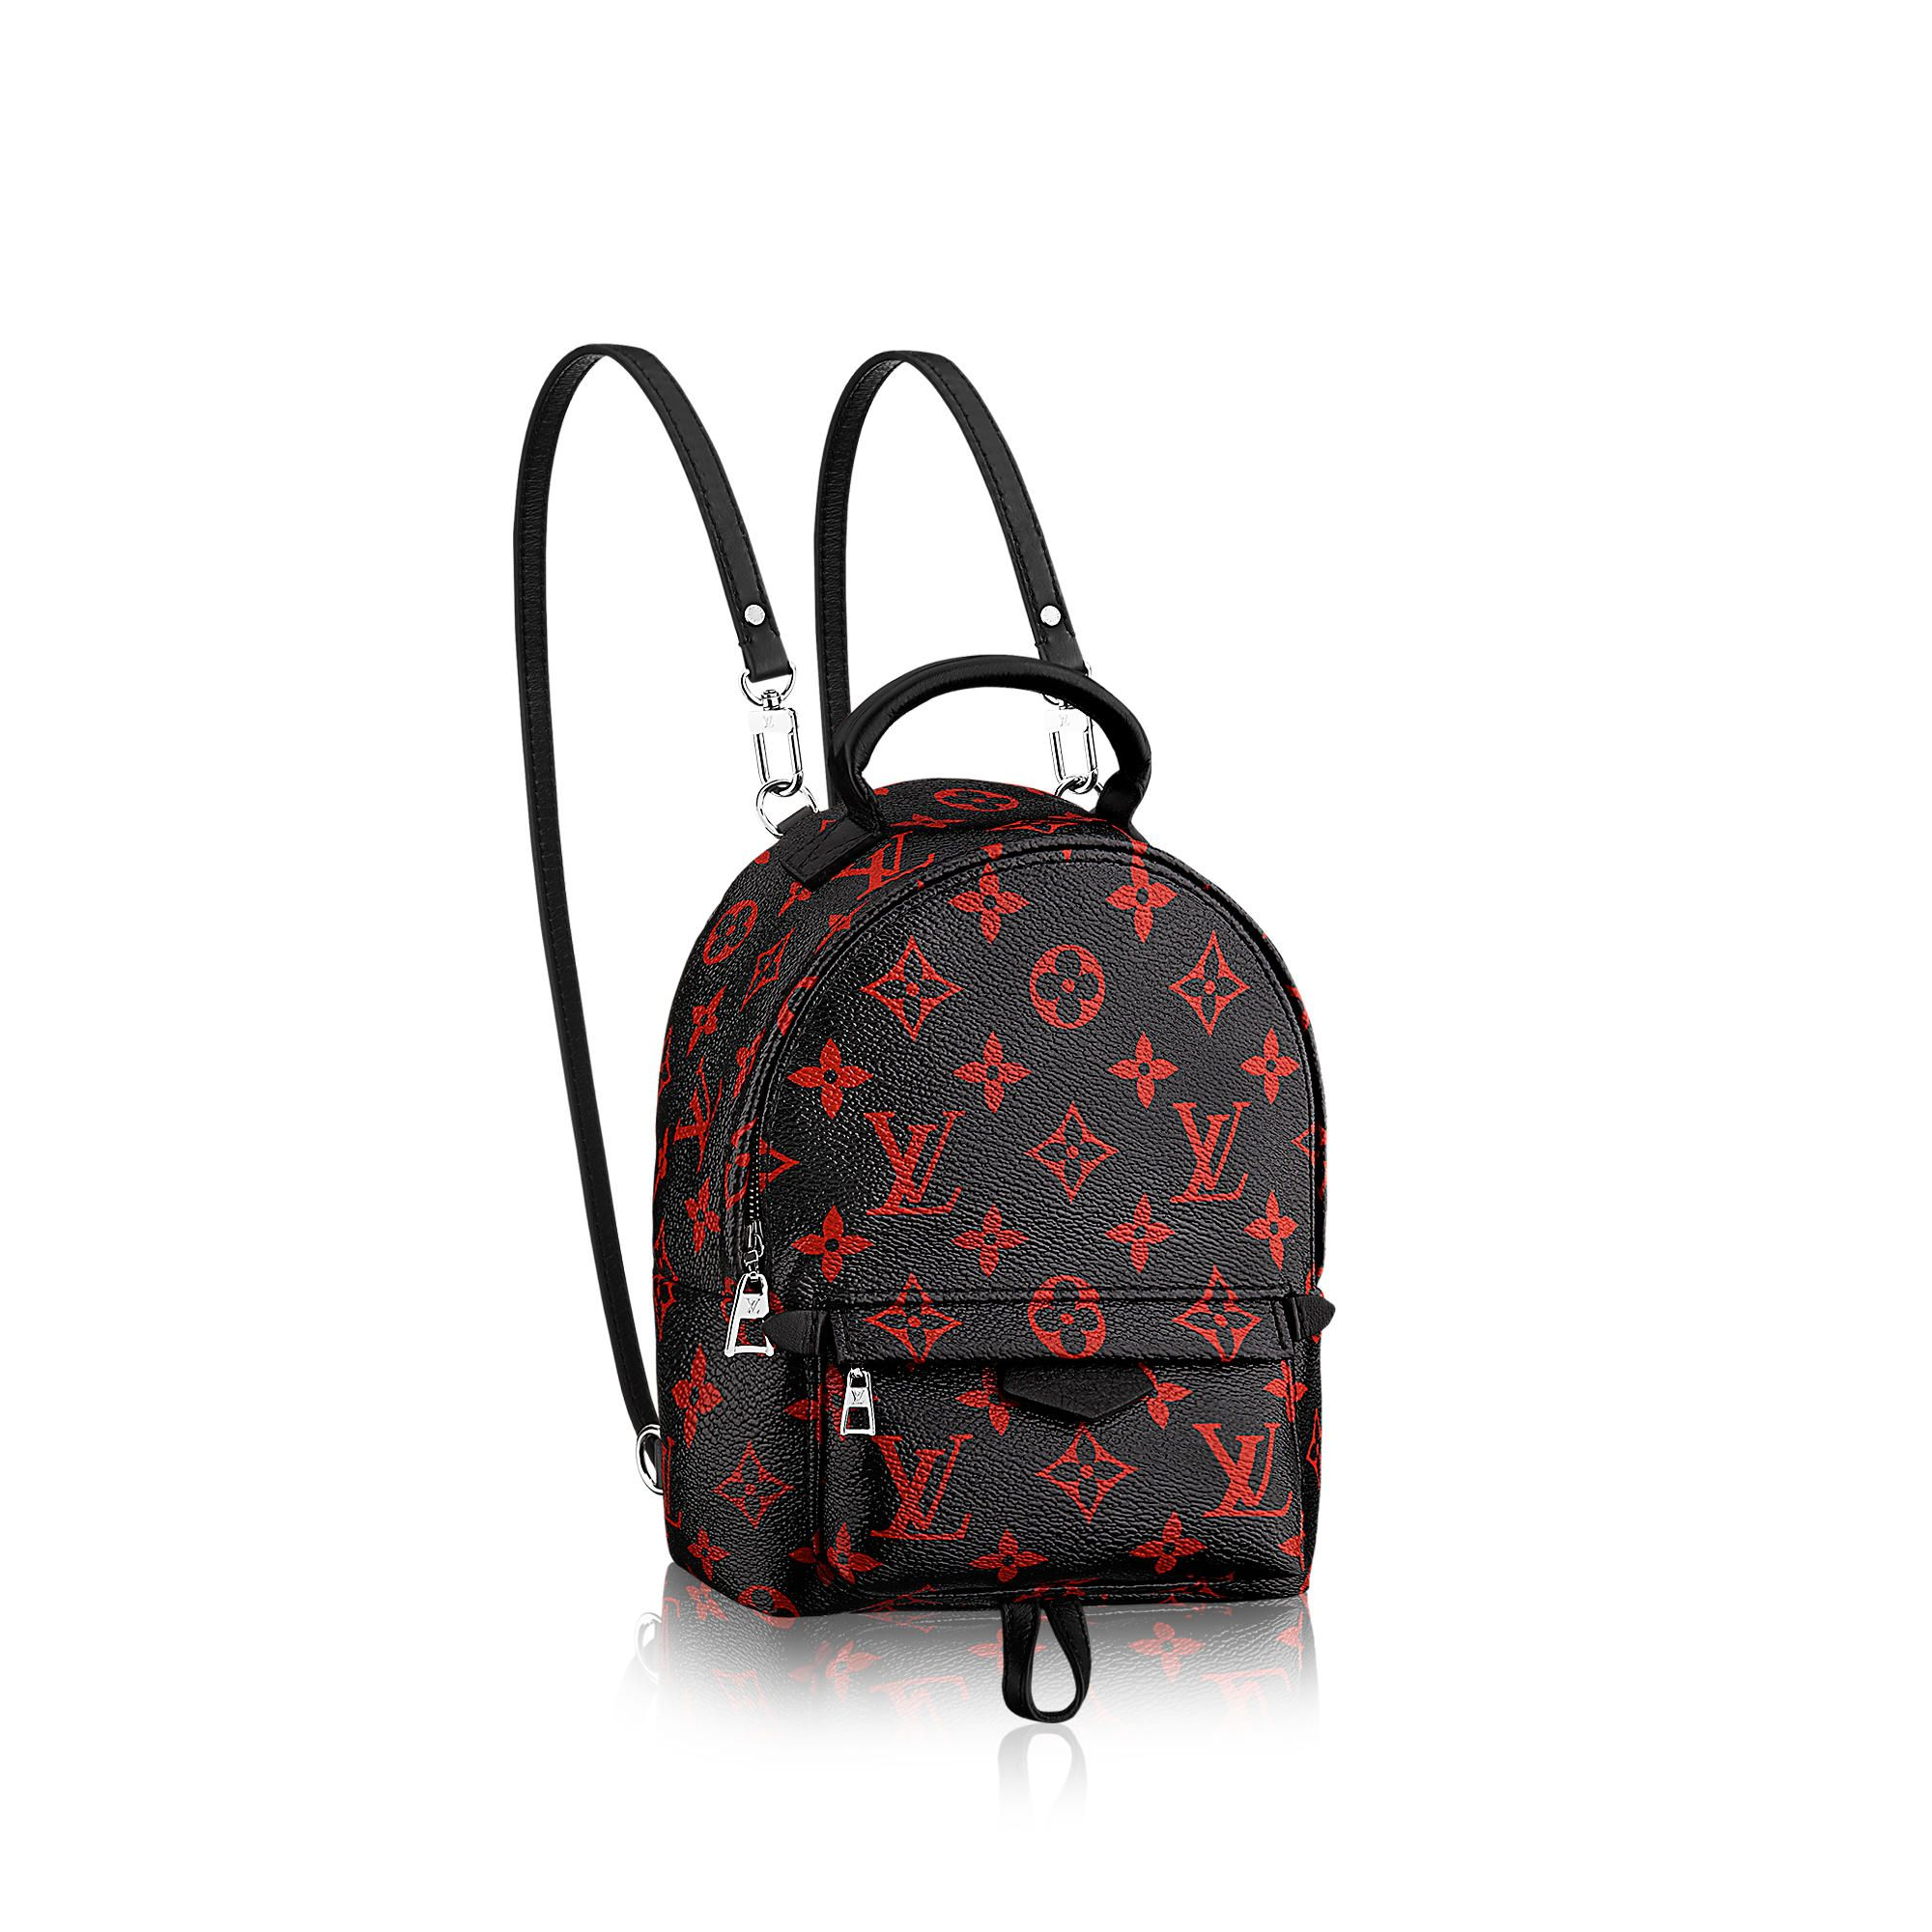 a77012b1f3c5 Image result for black and red louis vuitton backpack